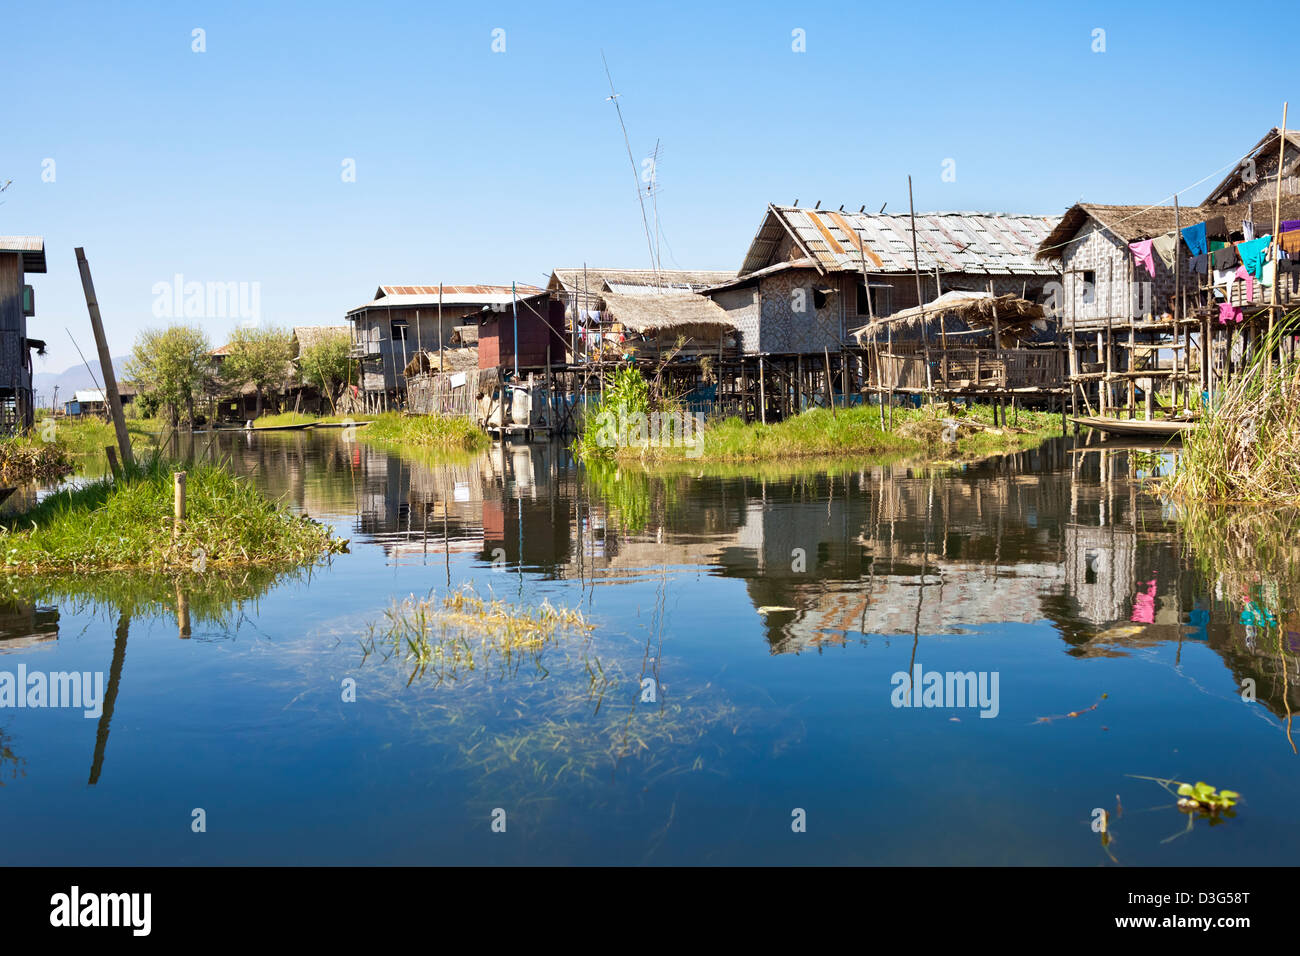 A village in Inle (also, Inlay) Lake in Myanmar - Stock Image